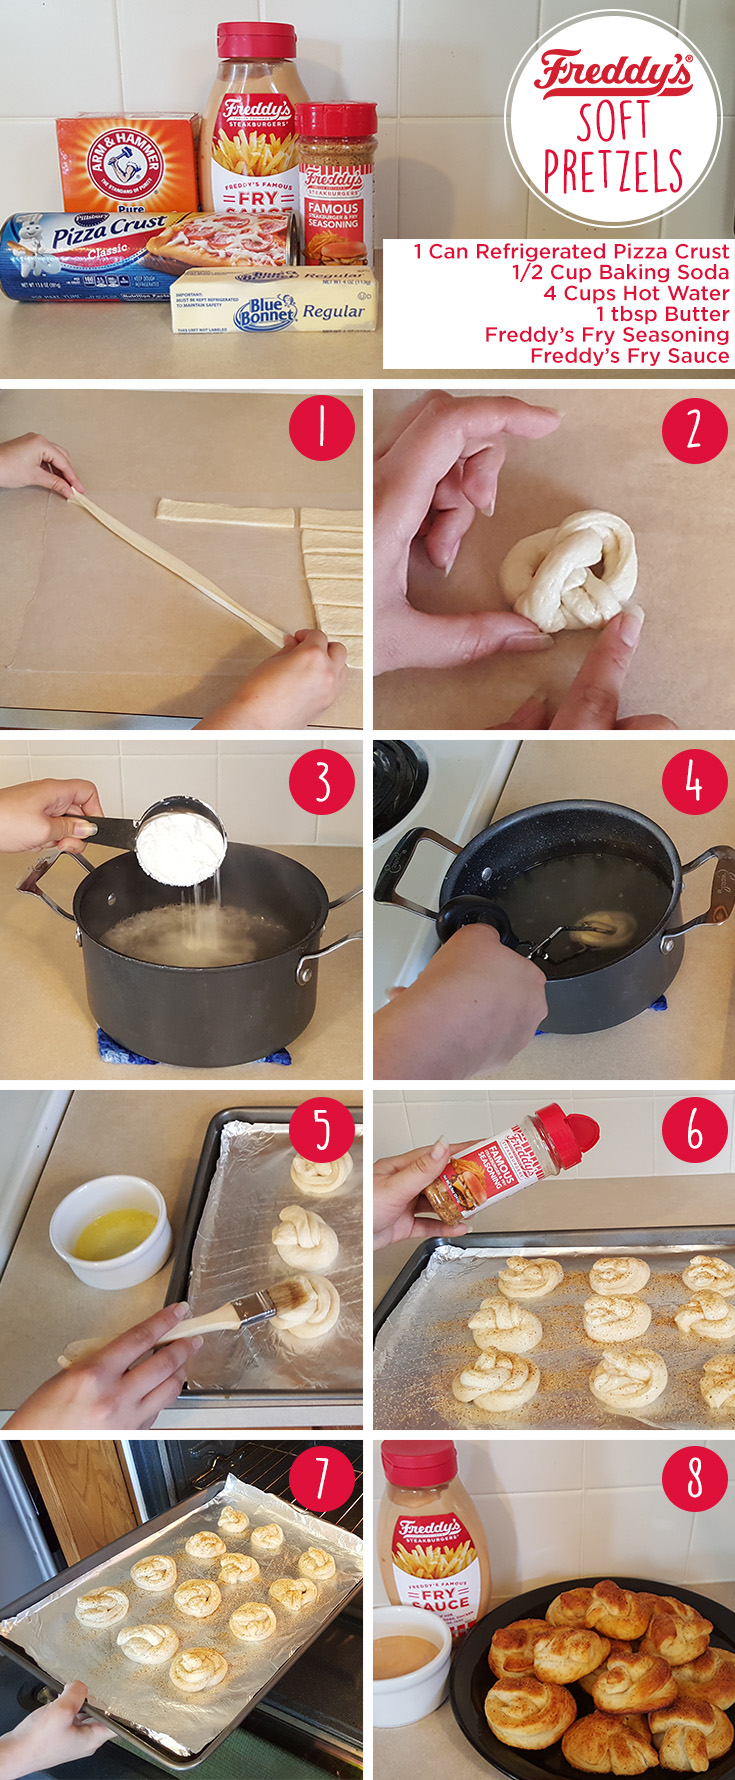 Freddy's Soft Pretzels Pinterest Post. Ingredients: 1 can refrigerated pizza crust, 1/2 cup baking soda, 4 cups hot water, 1 tbsp butter, Freddy's Fry Seasoning, Freddy's Fry Sauce.